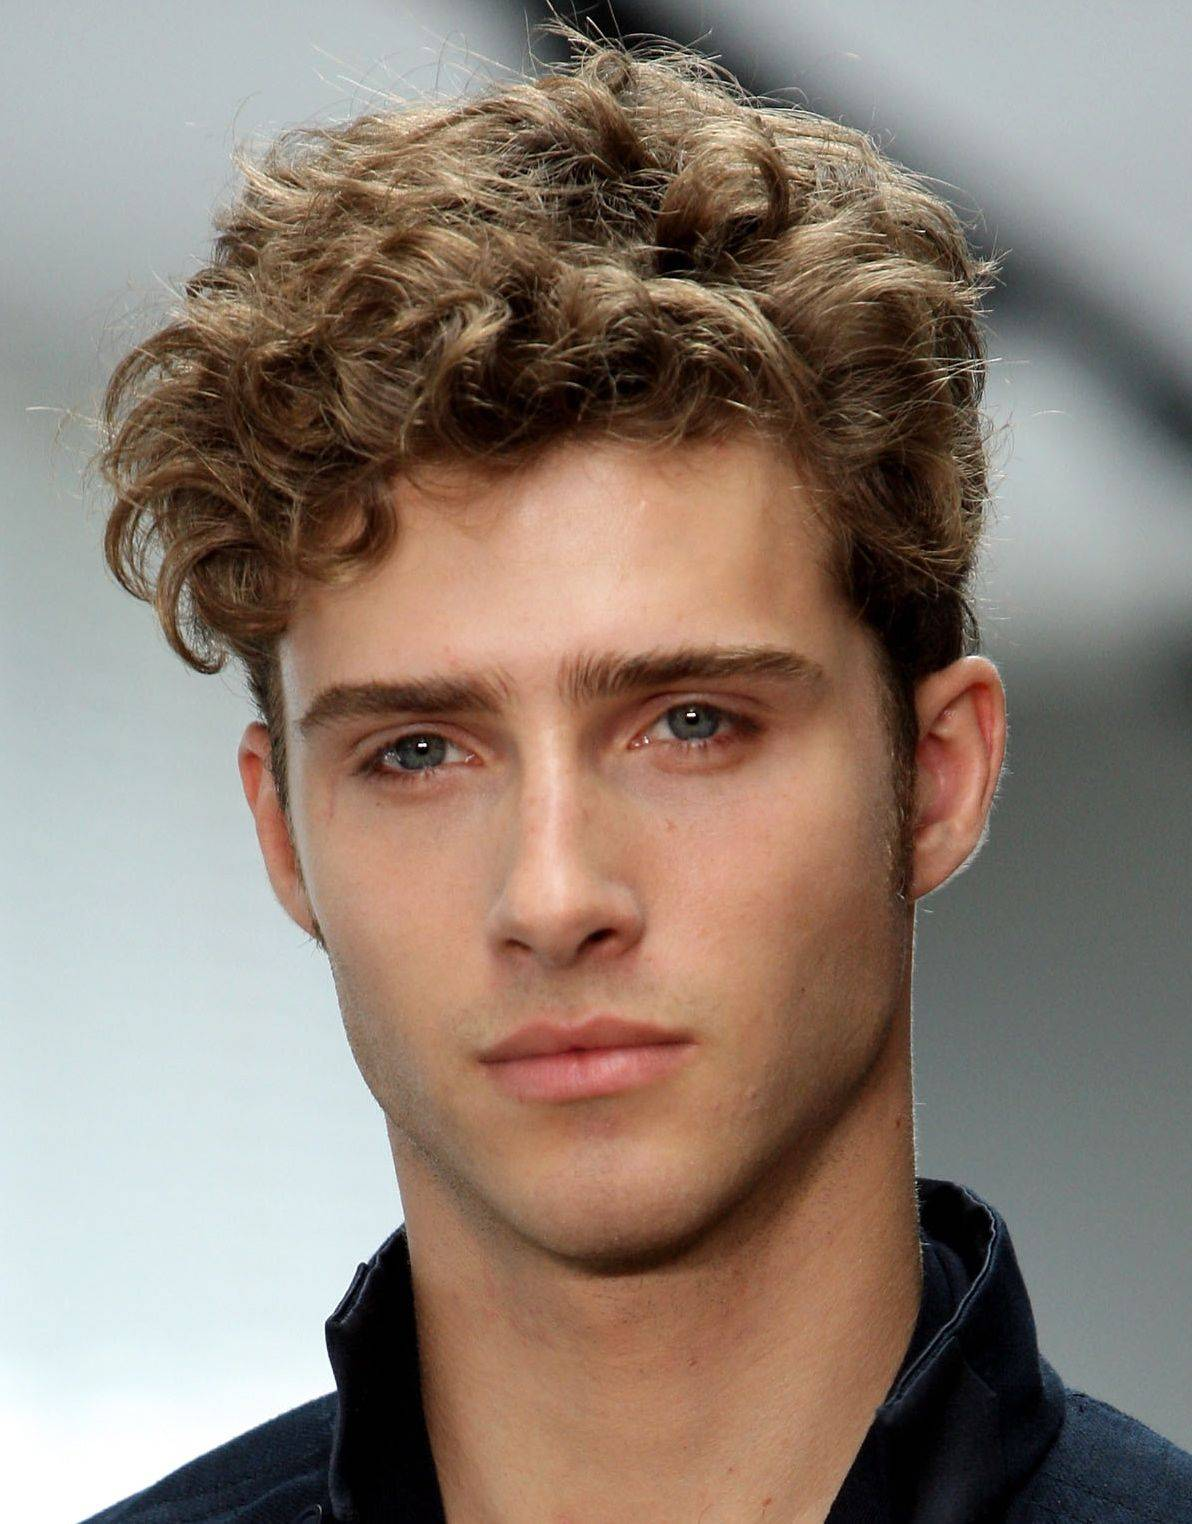 mens-short-curly-hair-style